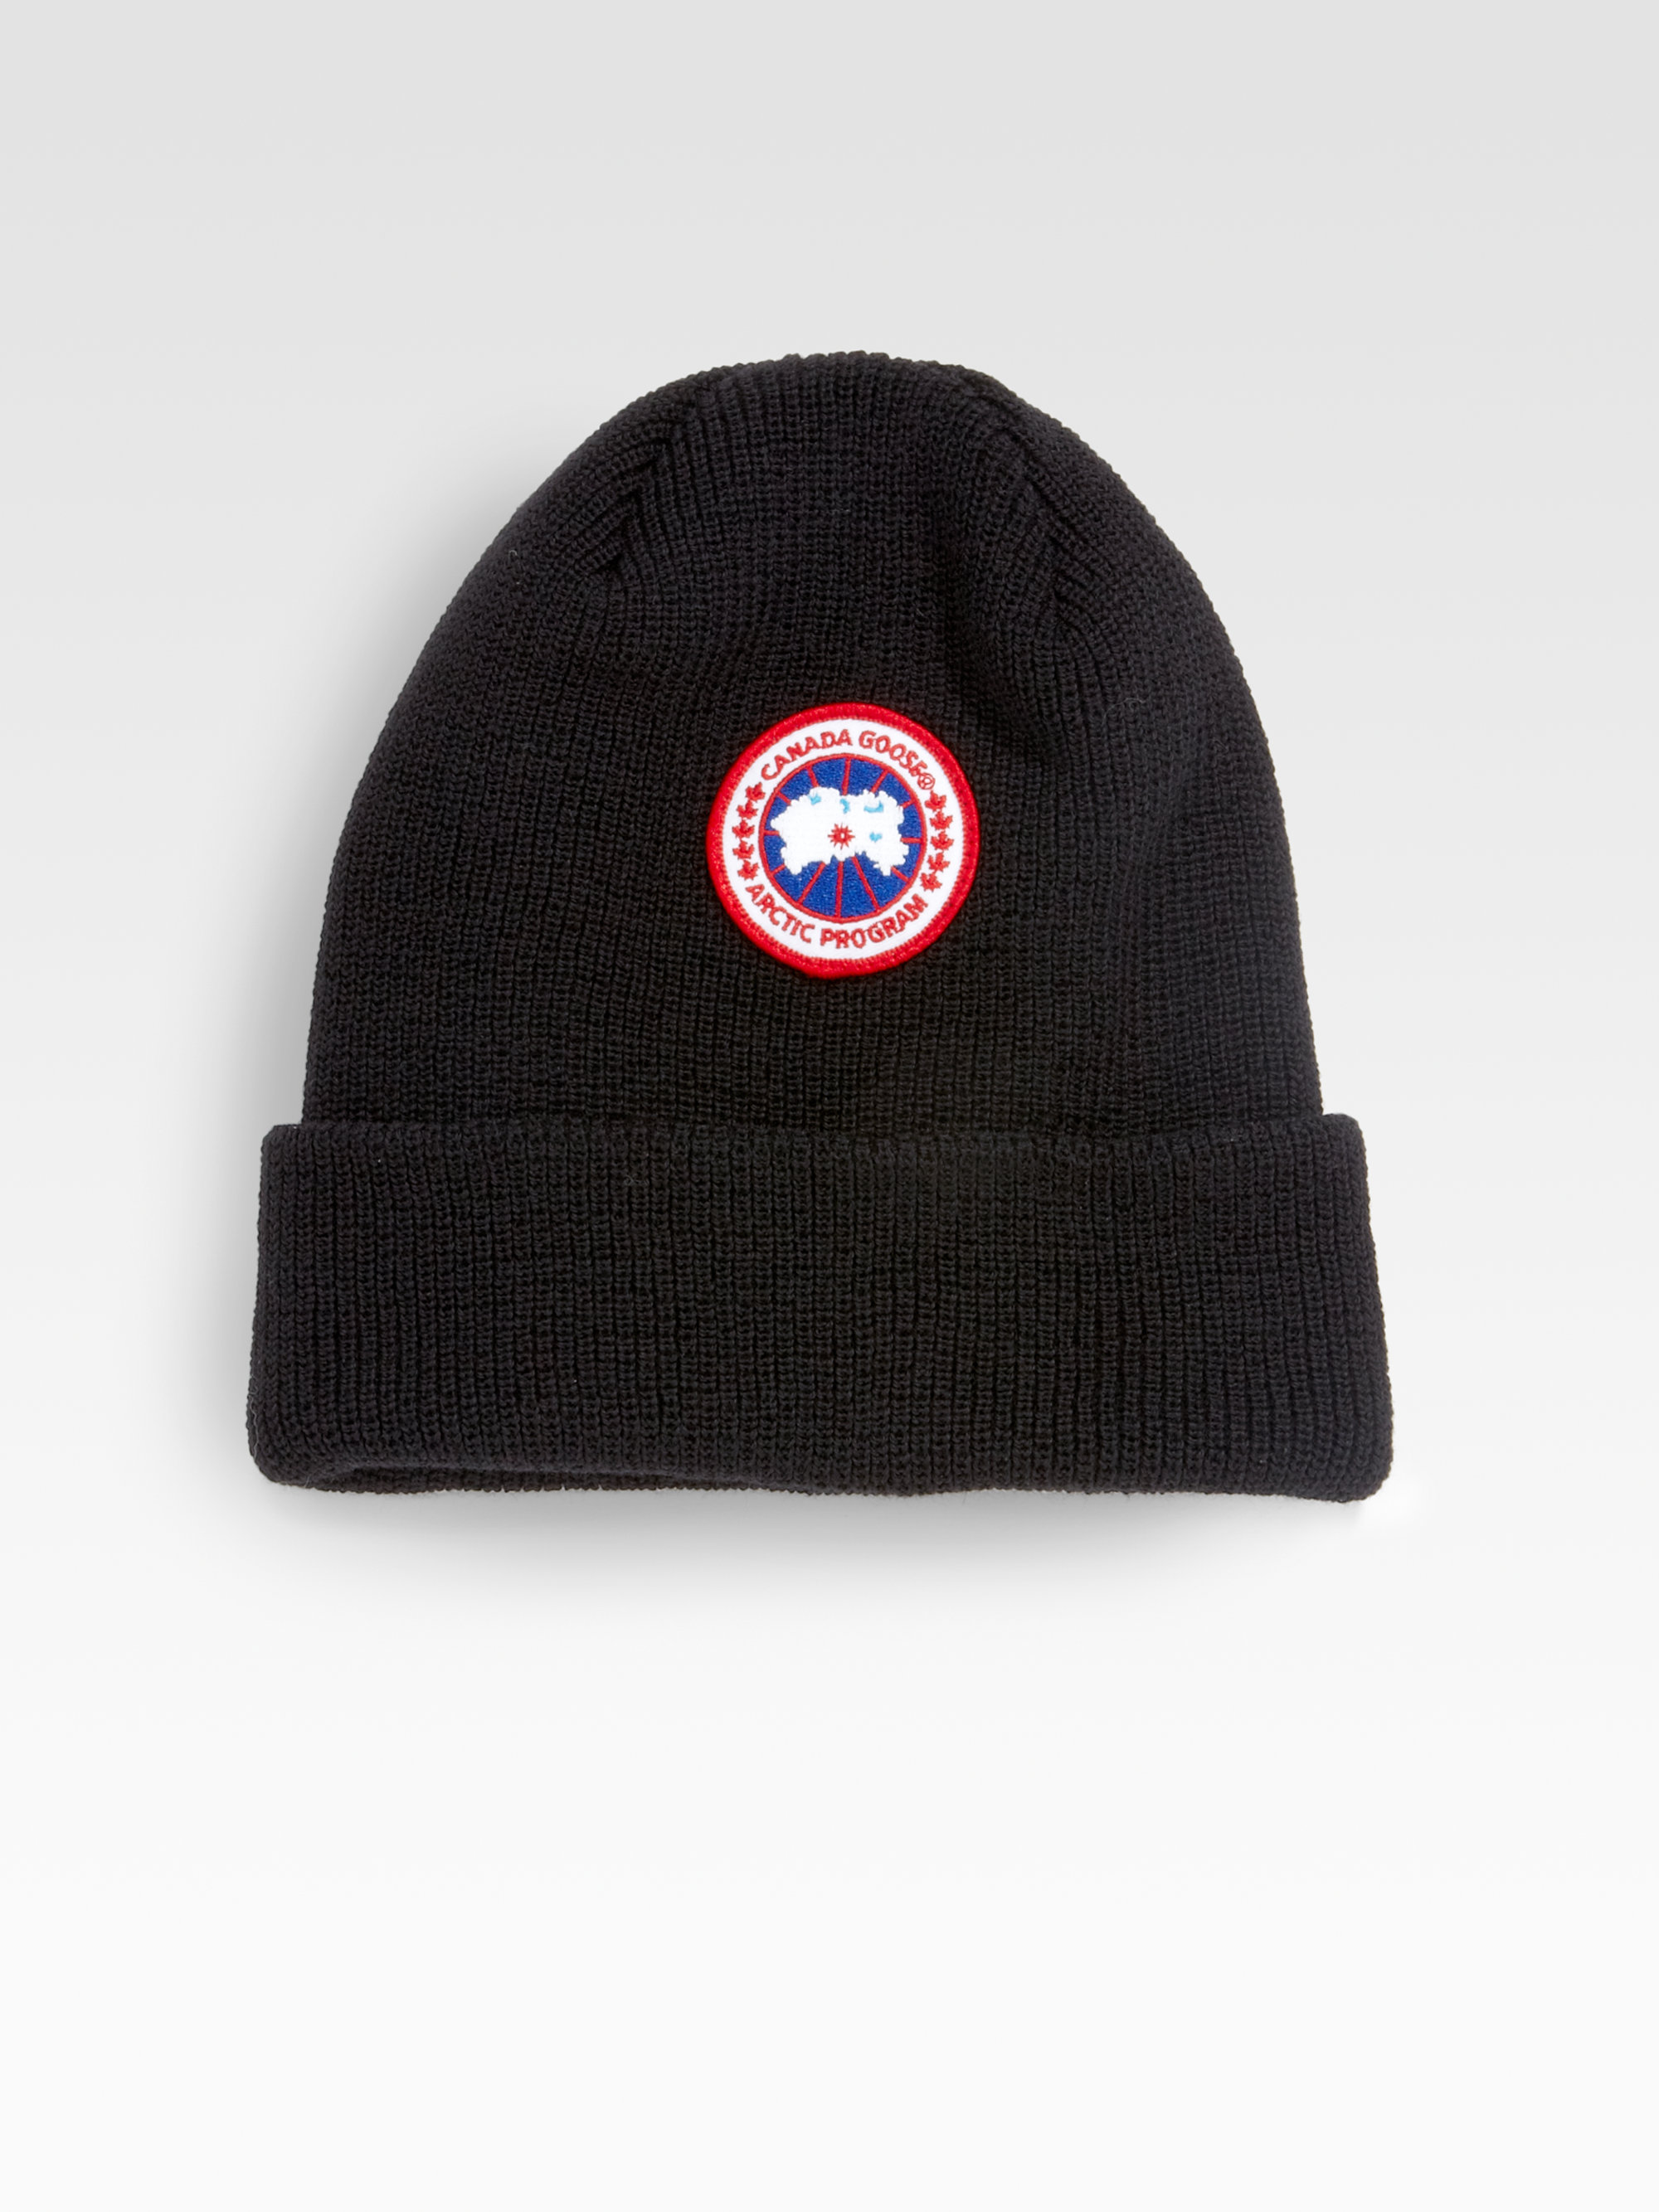 Lyst - Canada Goose Merino Wool Watch Cap in Black 3dbb714bb90